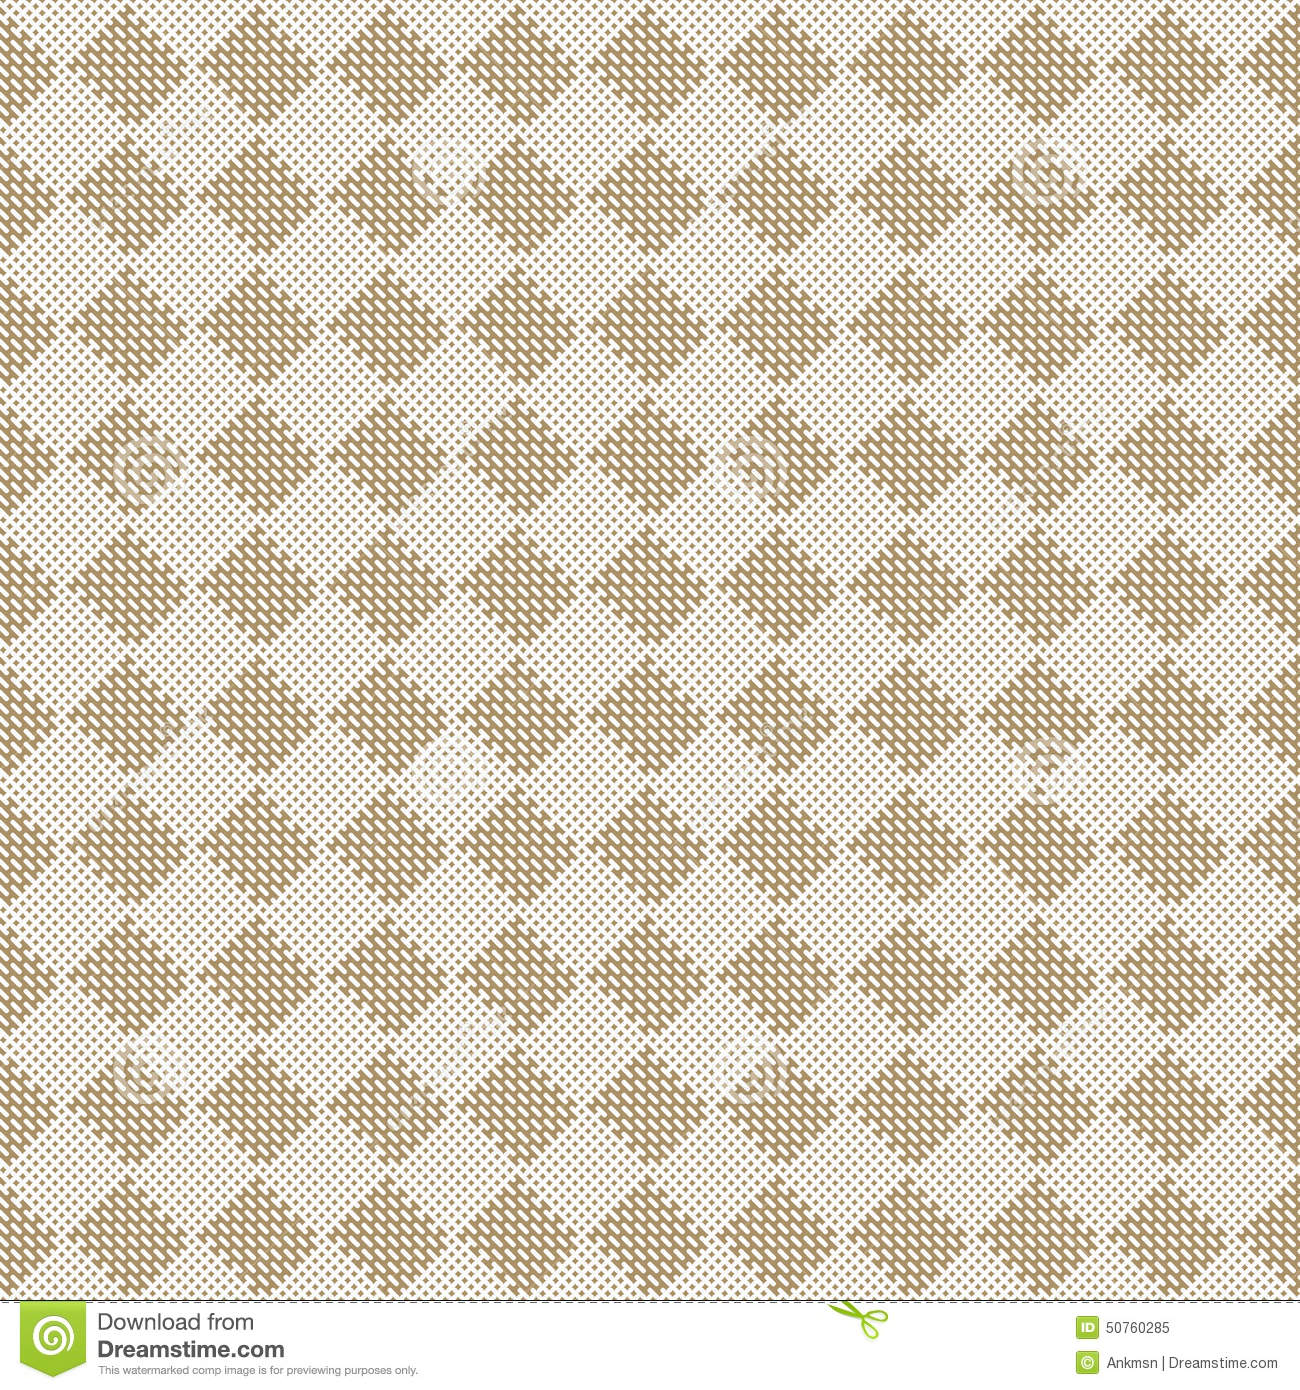 Black And White Striped Wallpaper Diagonal Square Beige Seamless Fabric Texture Pattern